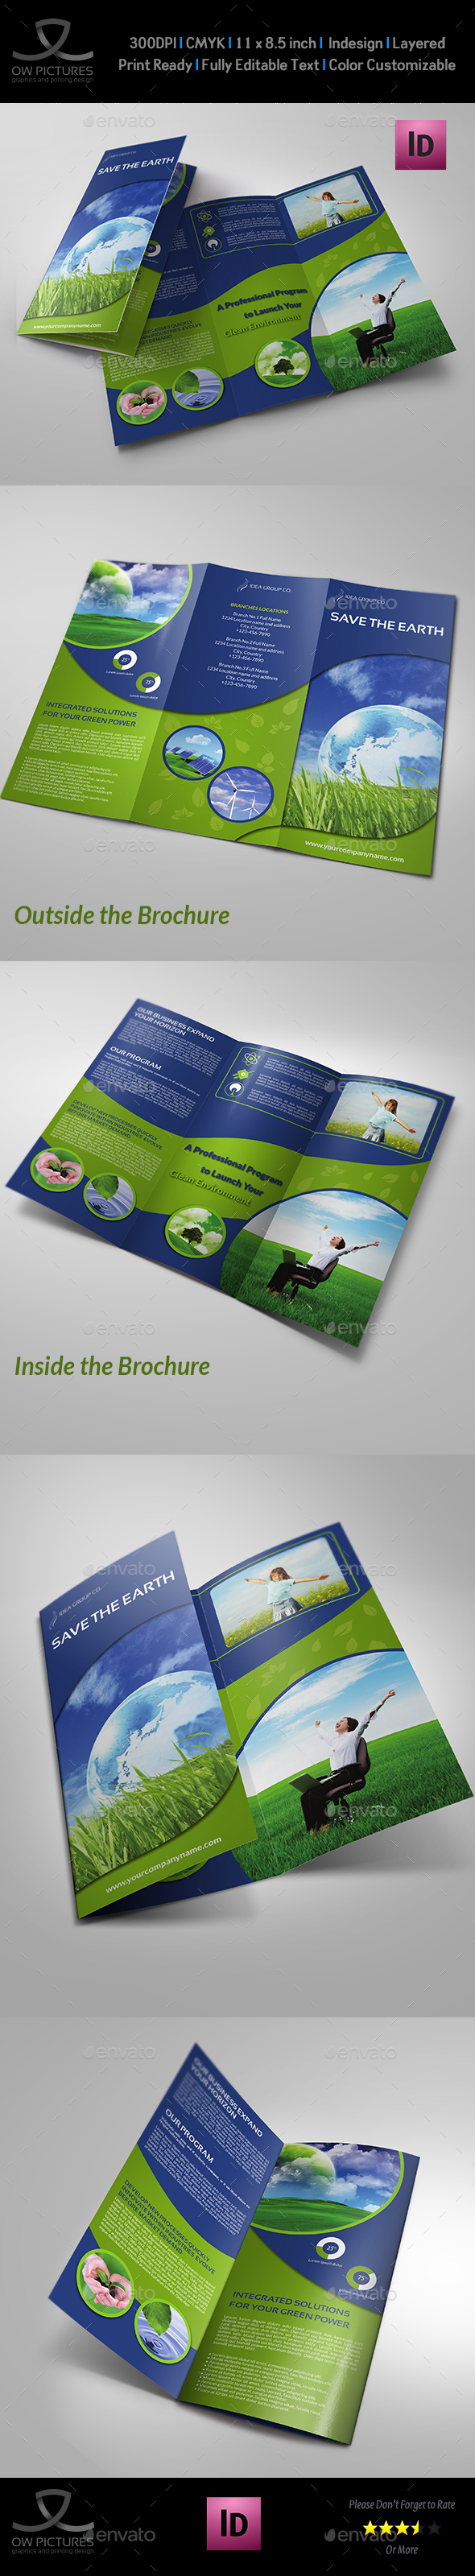 environment eco tri fold brochure template design download httpgraphicrivernetitemenvironment eco trifold brochure template vol213224032refksioks